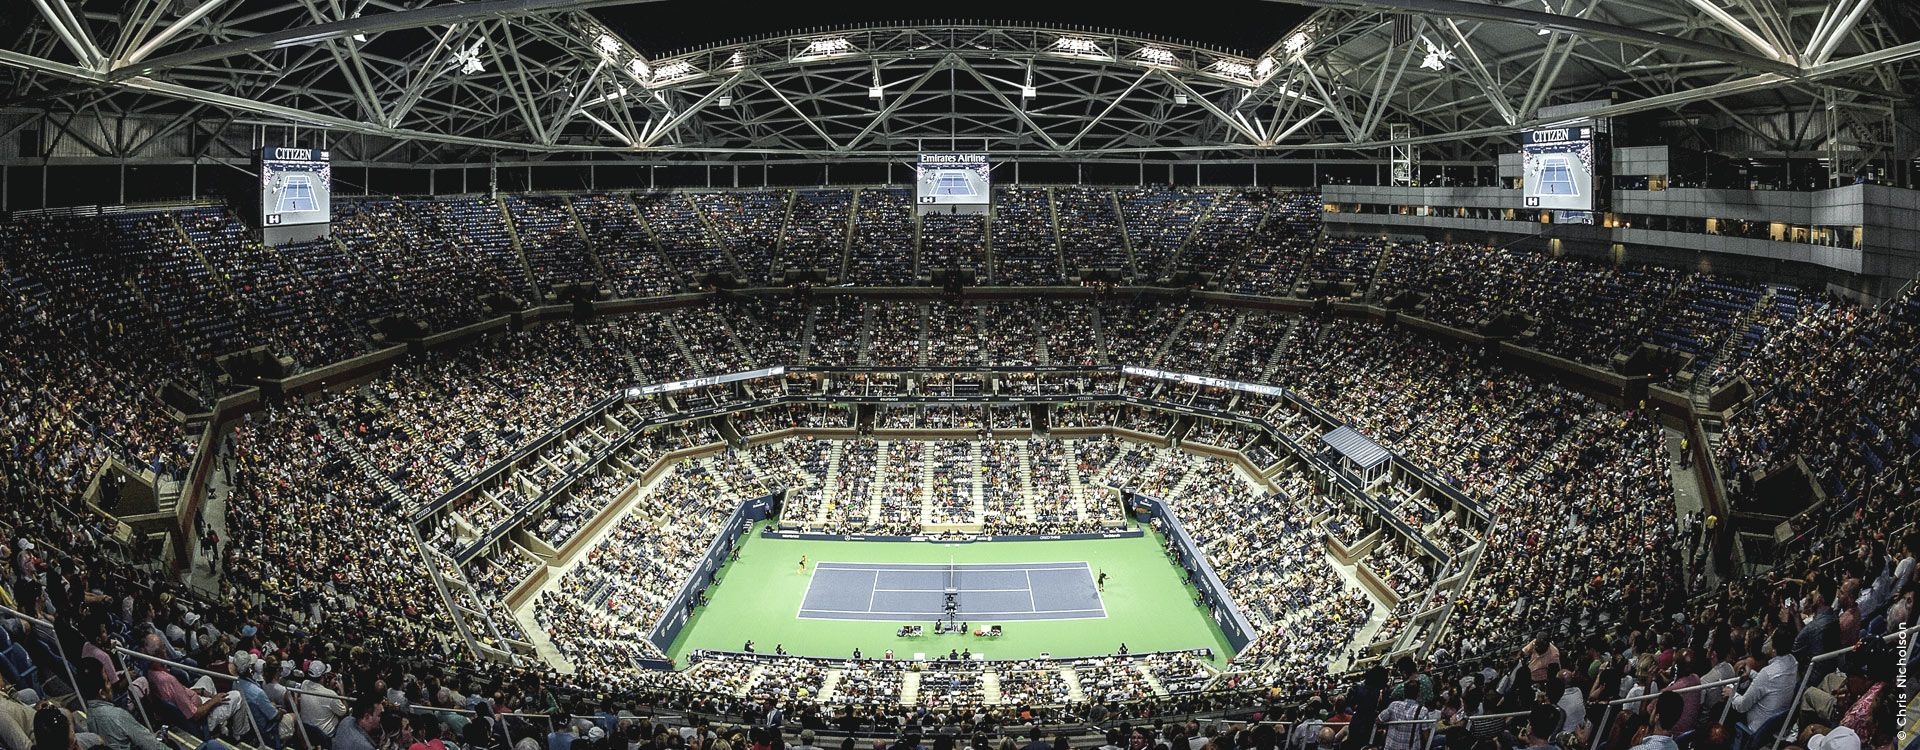 bnr-Arthur-Ashe-Stadium_Property-And-Building_Sports-and-Stadia